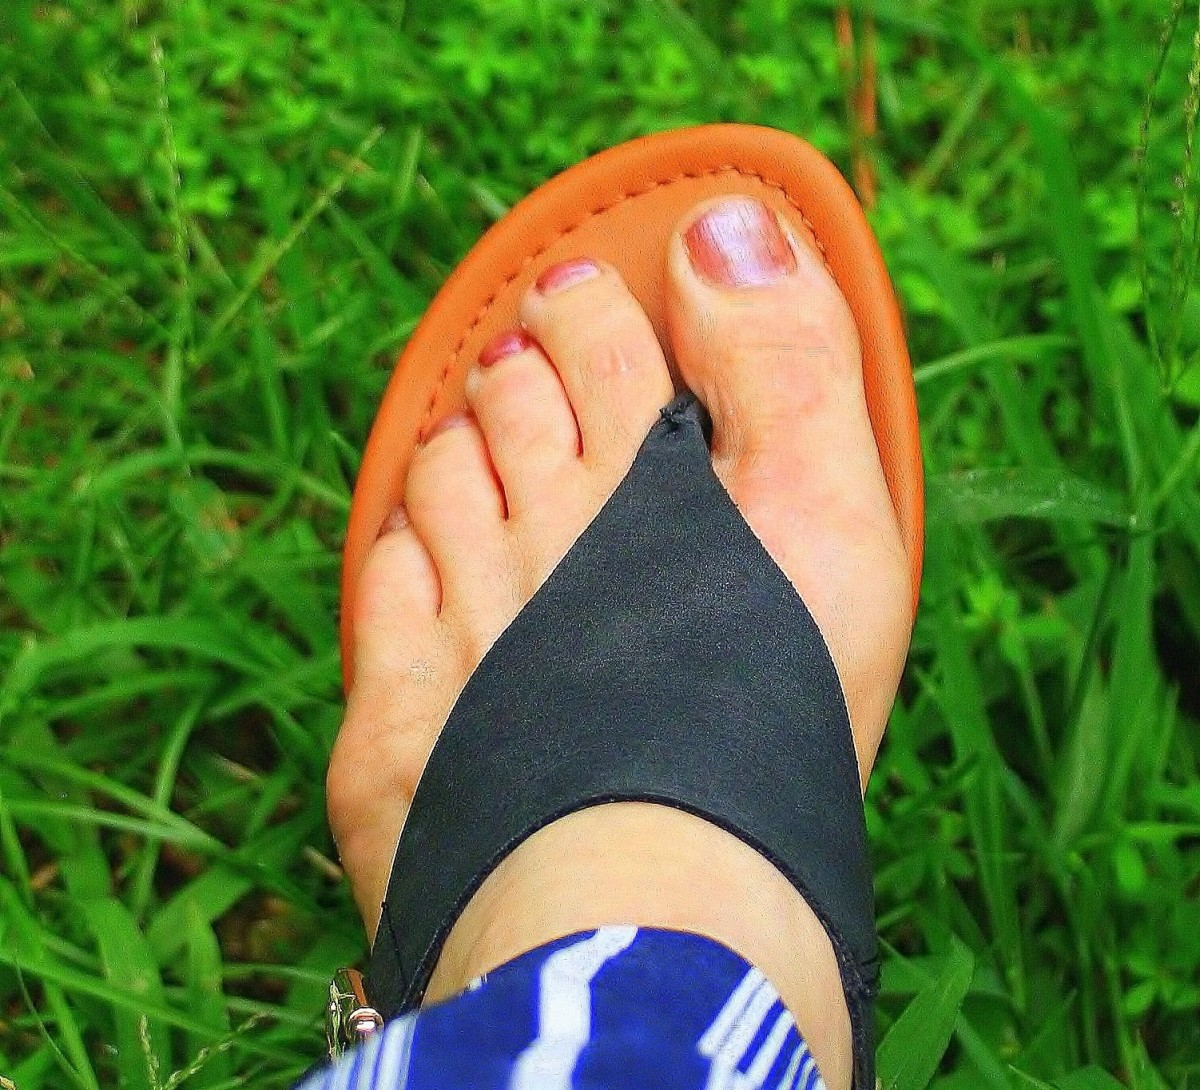 Athlete's foot is another cause of body odor.